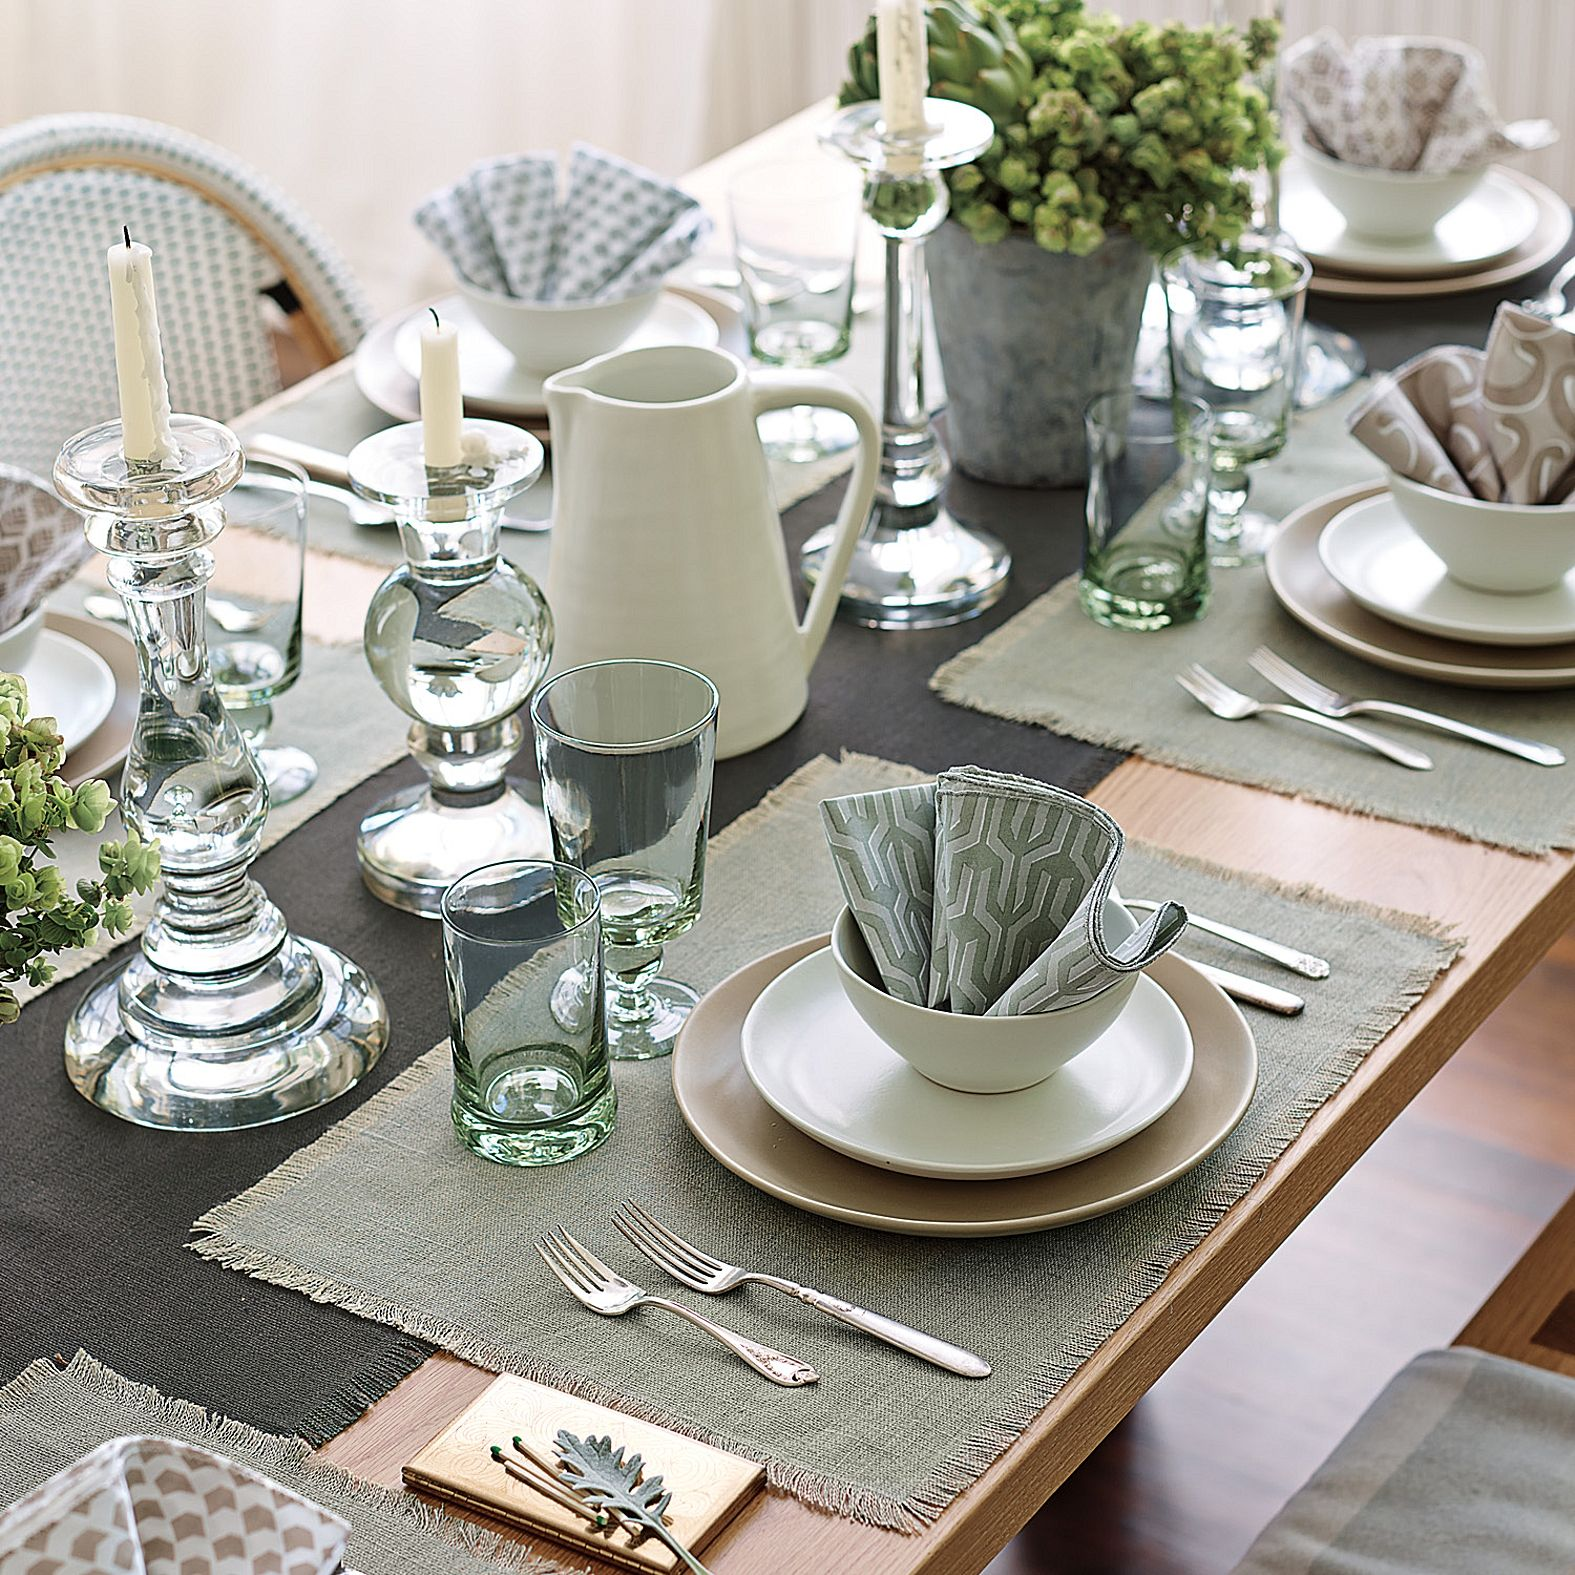 Park Stoneware Dinner Plates (Set of by Serena u0026 Lily at Gilt & Park Stoneware Collection u2013 Chalk (Set of 4) | Serena u0026 Lily ...